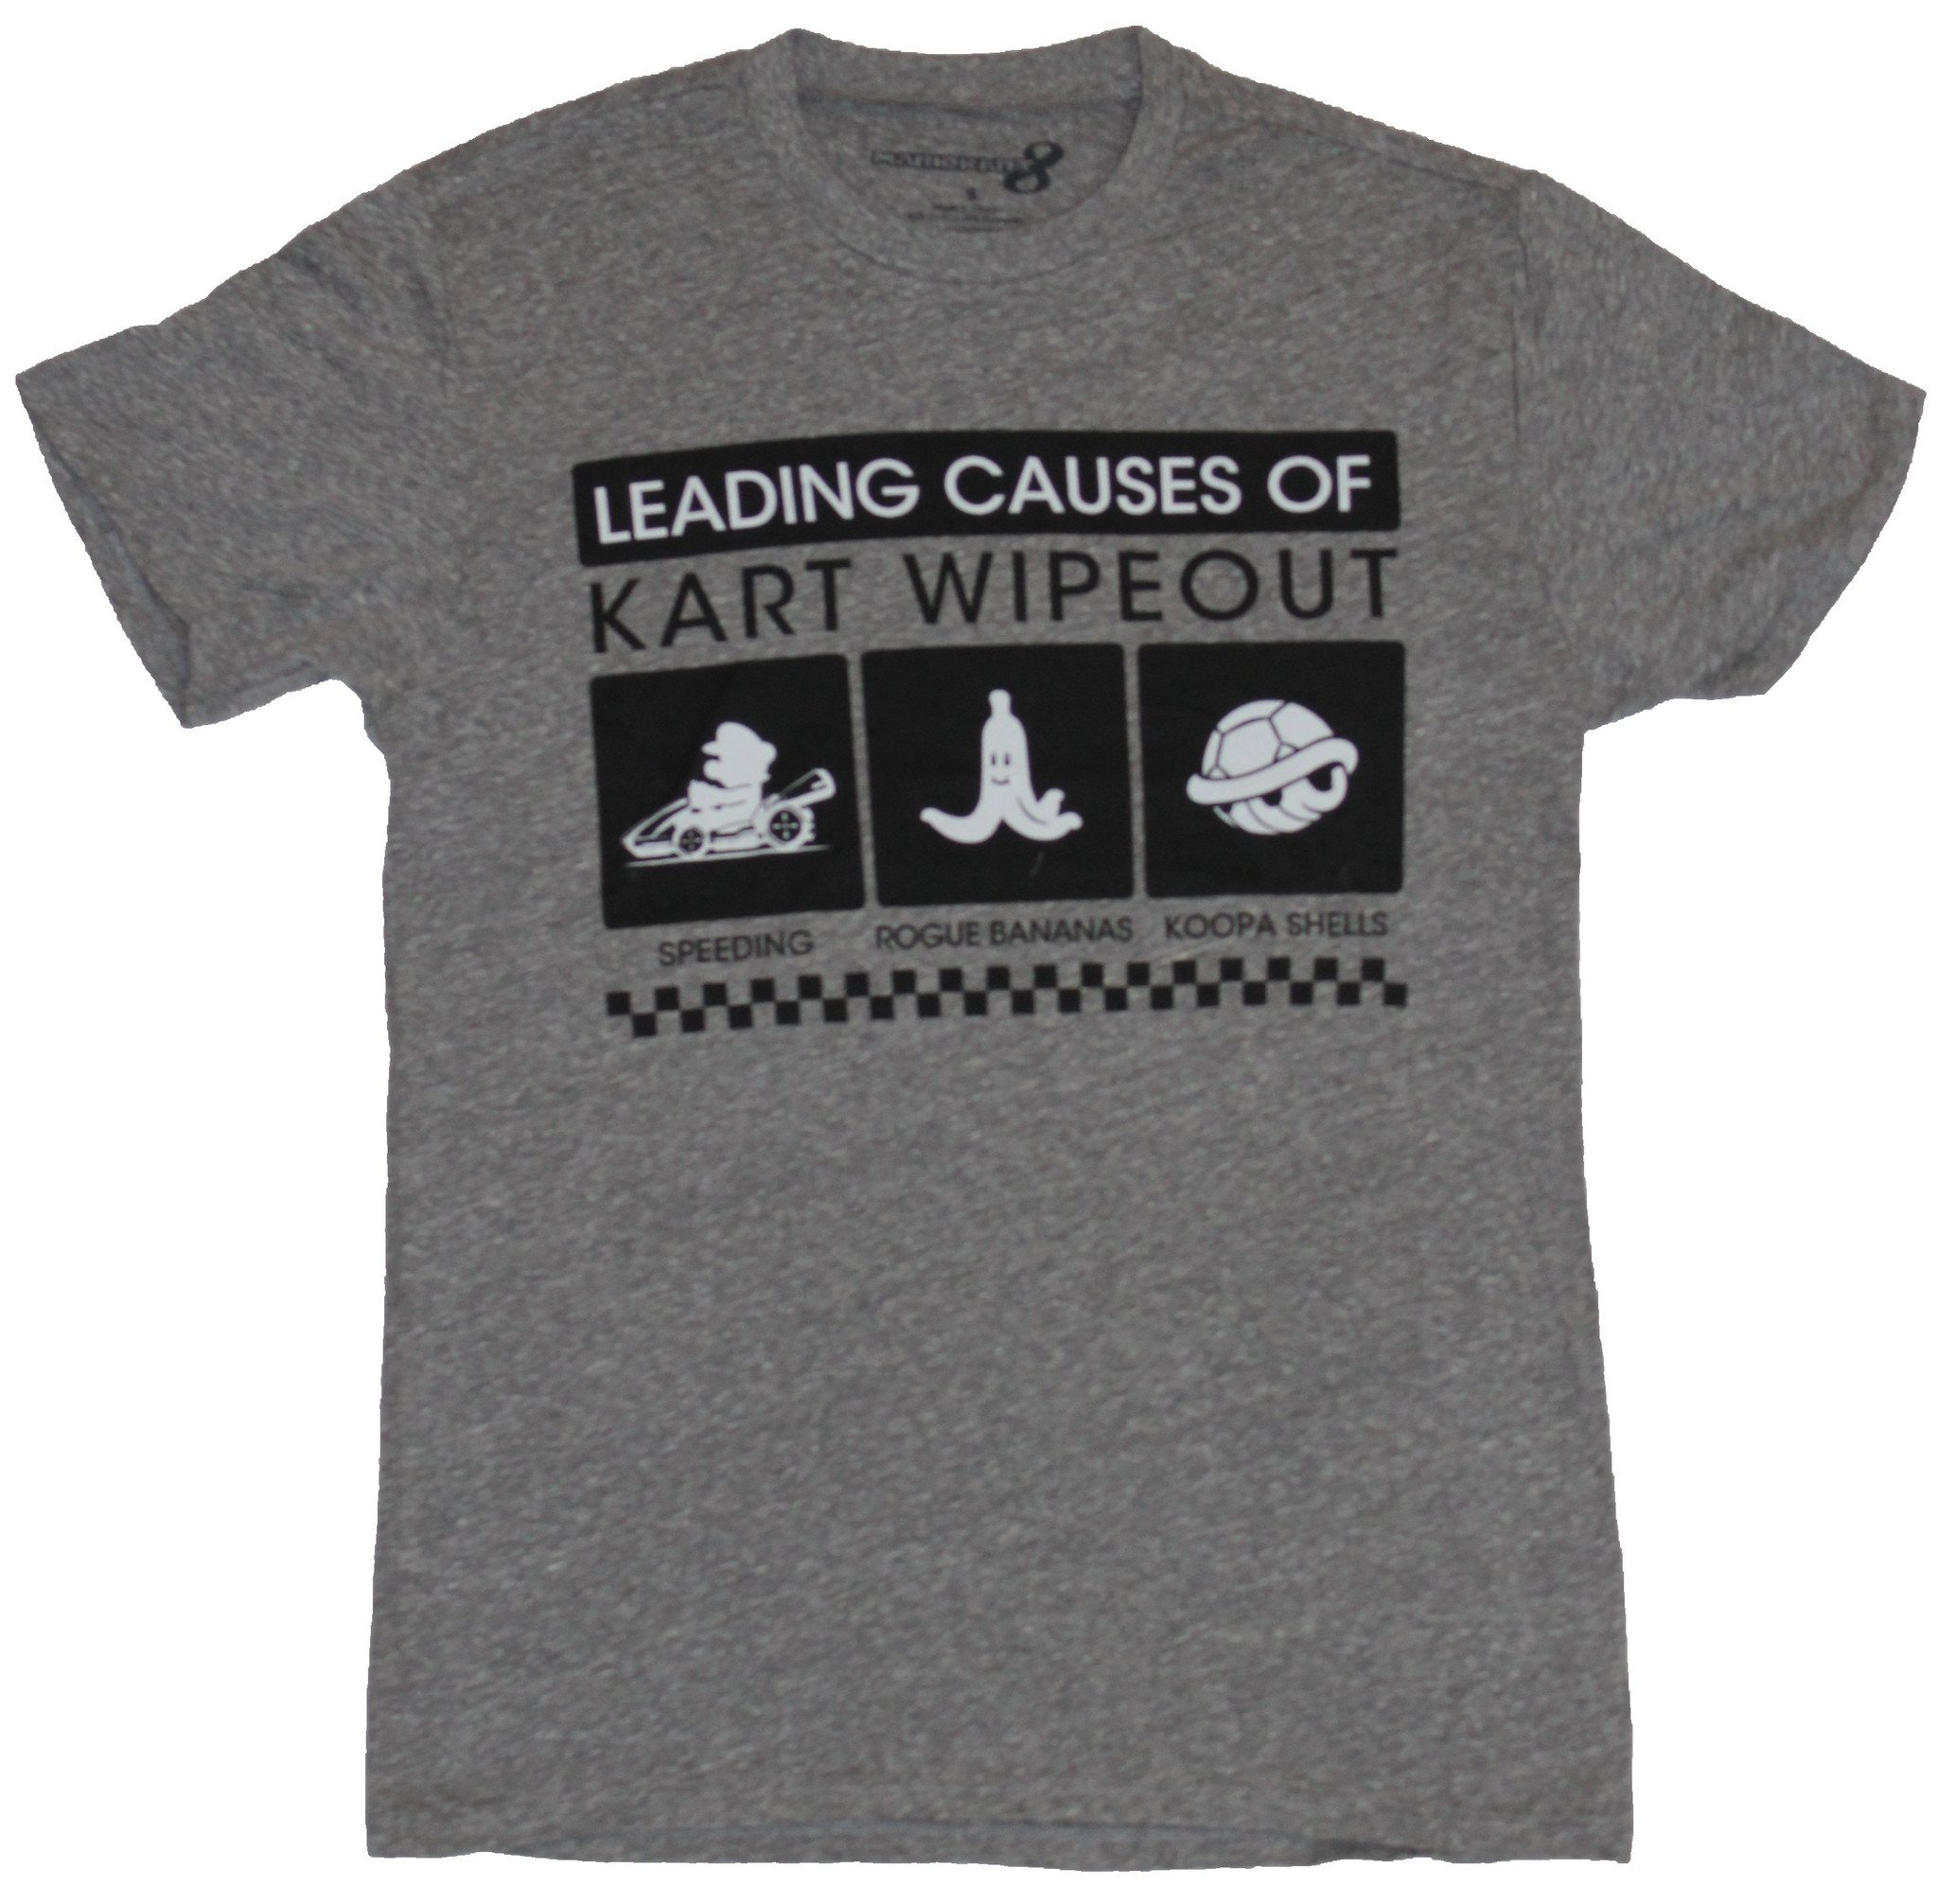 Mario Kart Mens T-Shirt - Leading Causes of Kart Wipeout Images